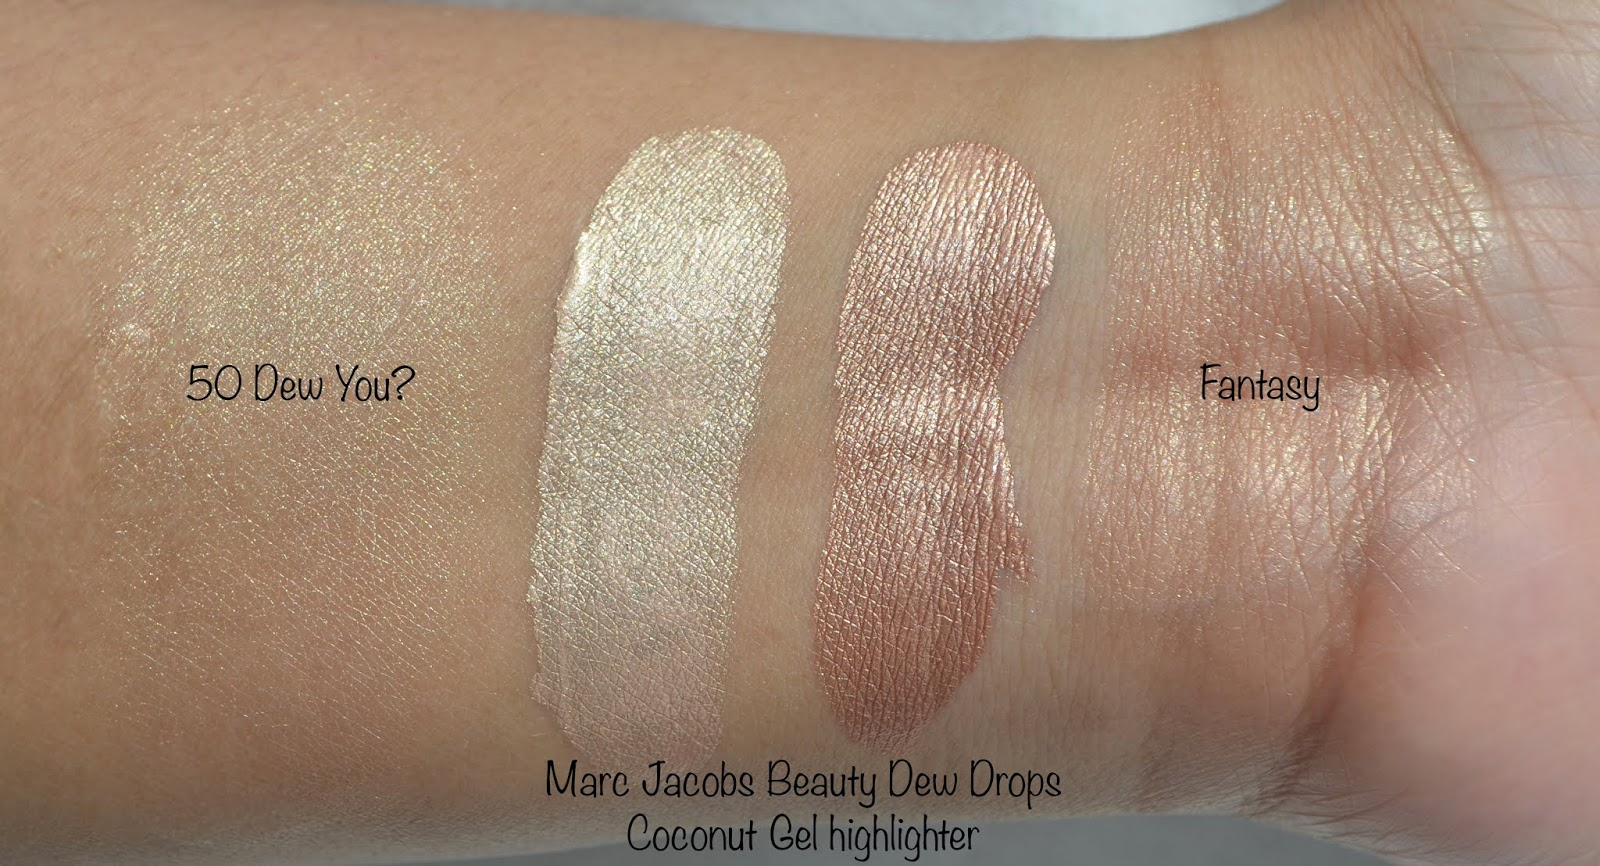 Dew Drops Coconut Gel Highlighter by Marc Jacobs Beauty #13